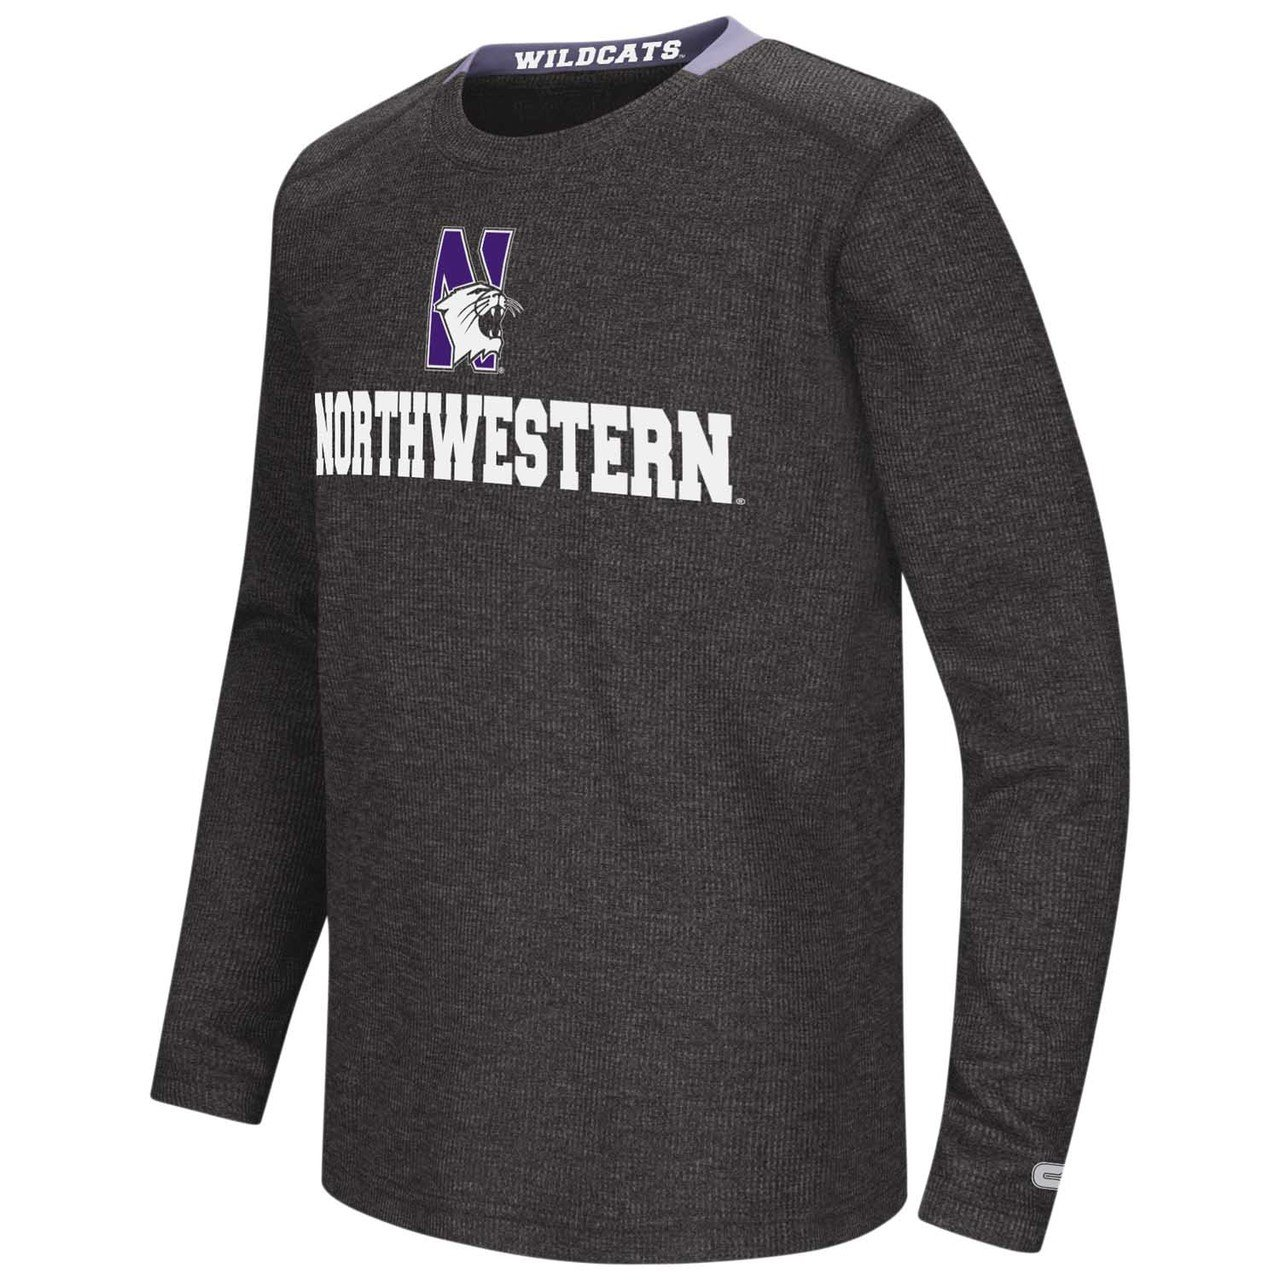 Northwestern Wildcats Youth NCAA Steff Long Sleeve T-Shirt Team Color,